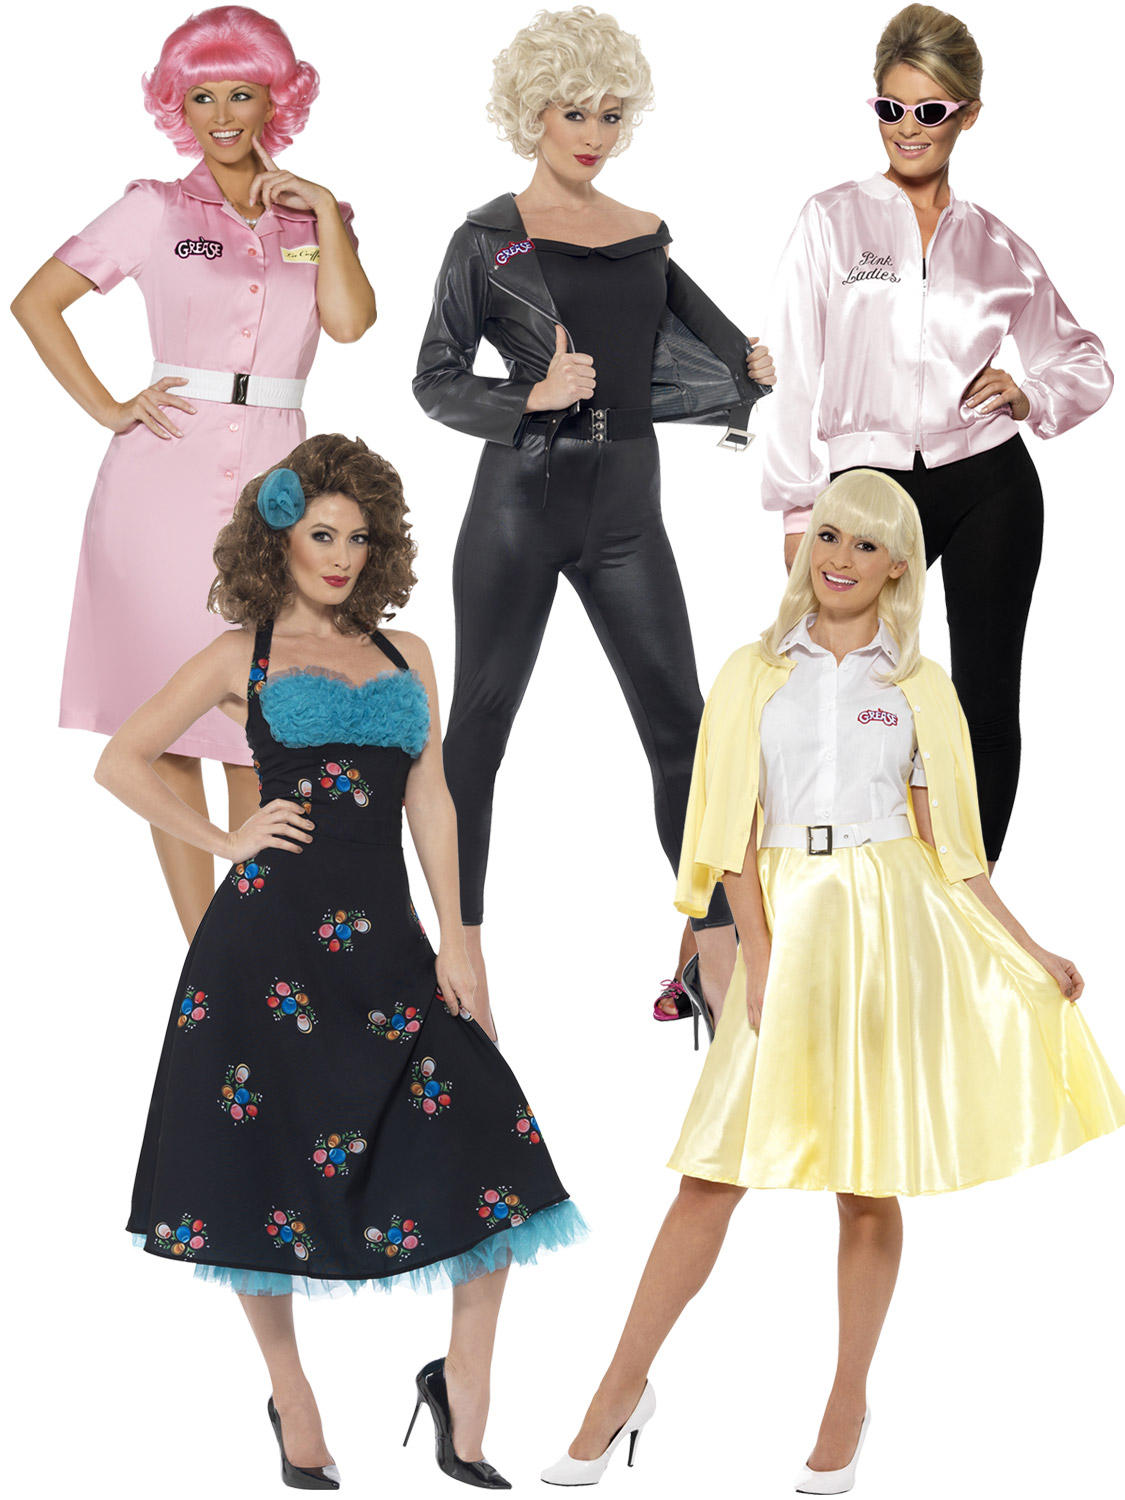 Welp Ladies Grease Sandy Costume 50 High School Frenchy Pink Lady ME-83